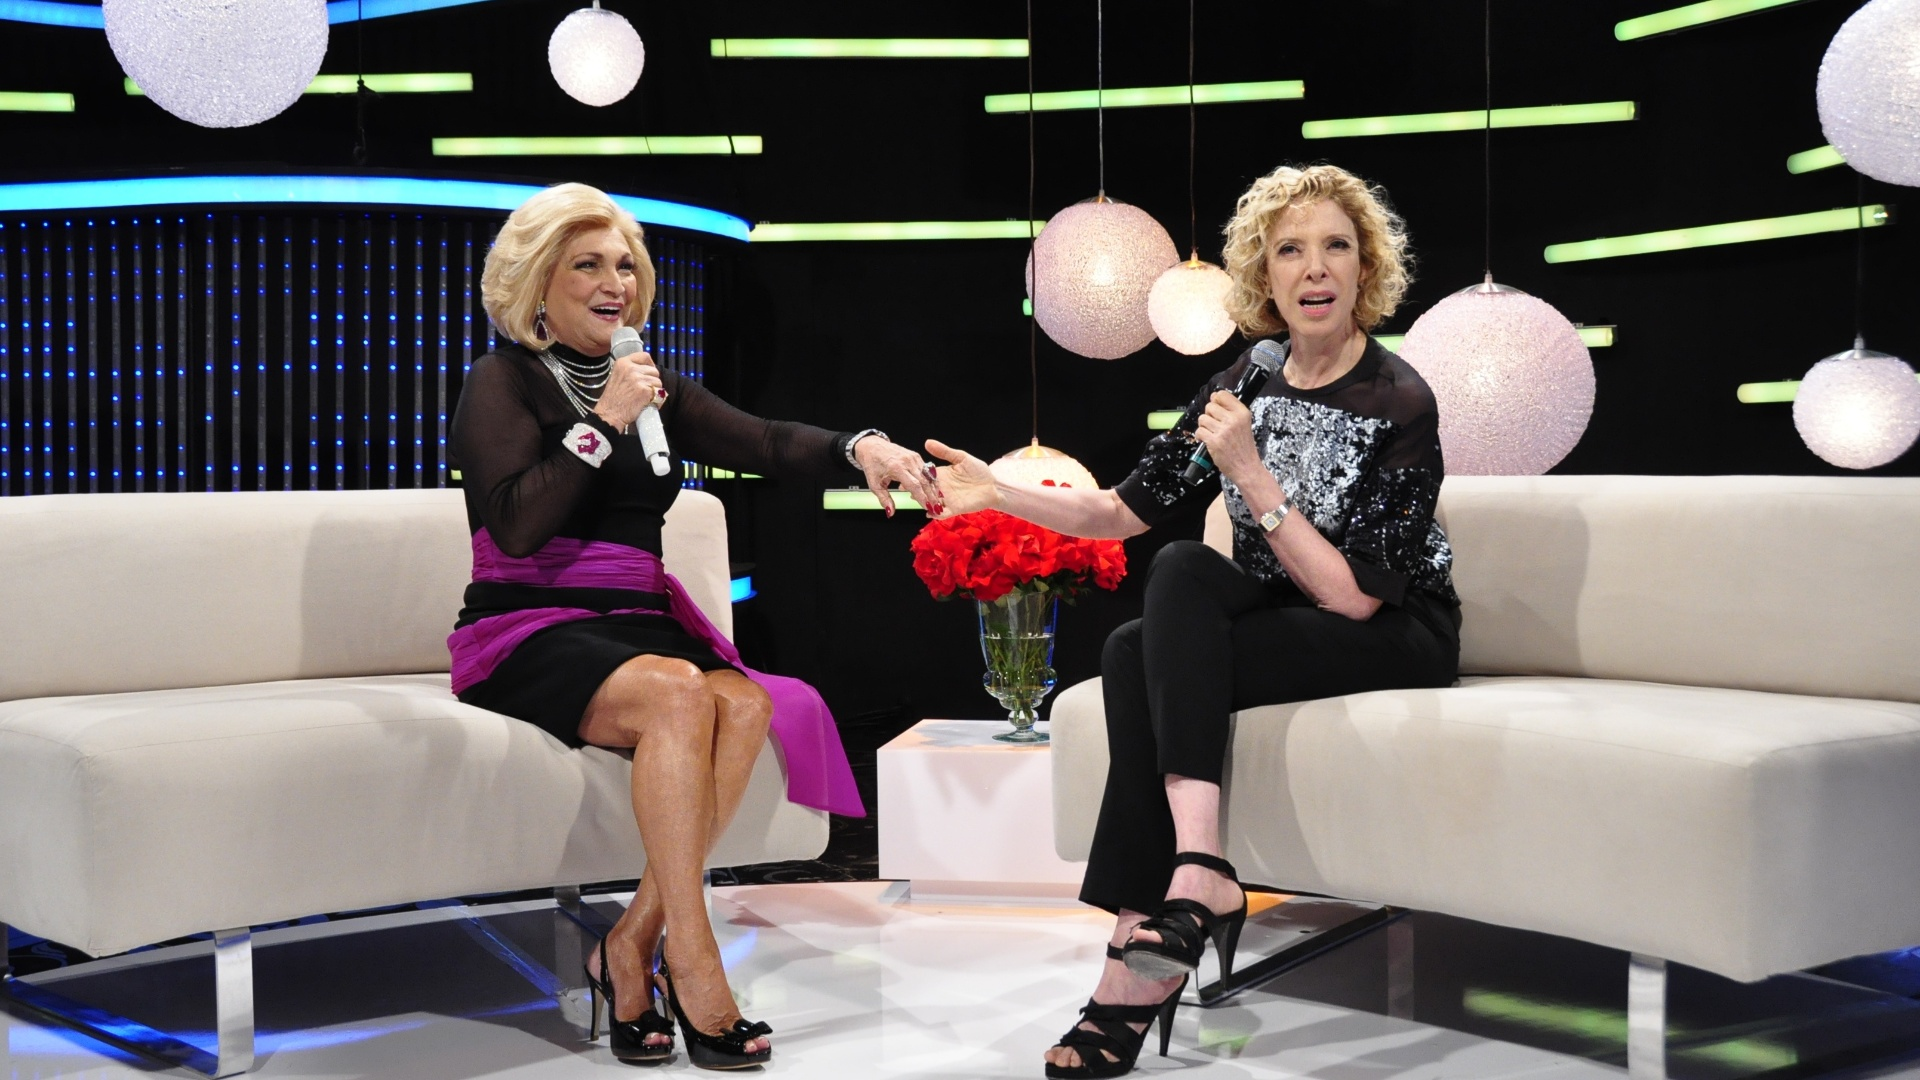 Hebe recebe Marlia Gabriela em seu programa na RedeTV! (11/11/11)